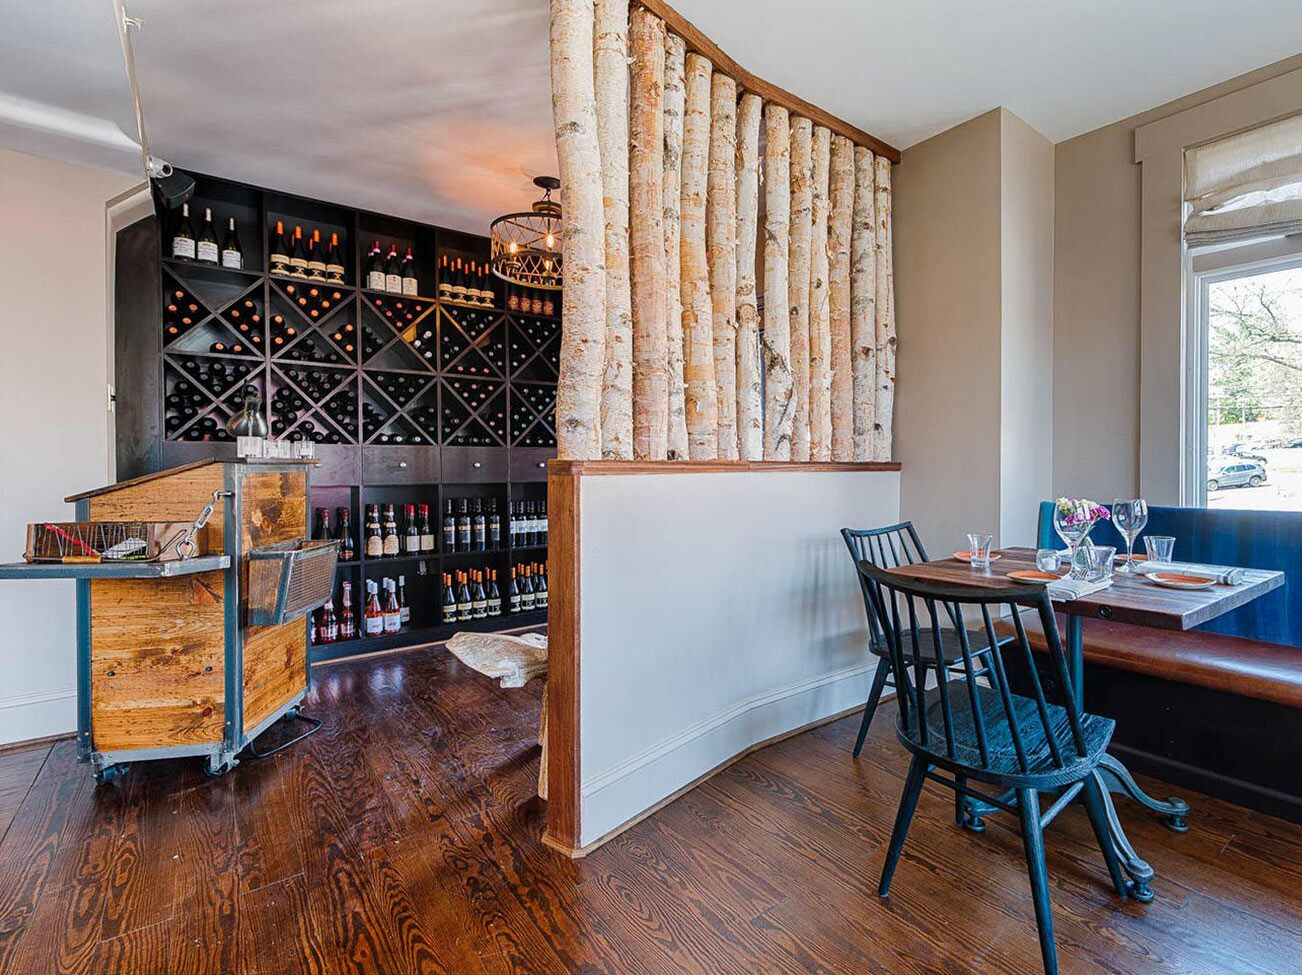 A wine room and office area, separated by a small curved wall, wood floor, and blue-painted chairs.